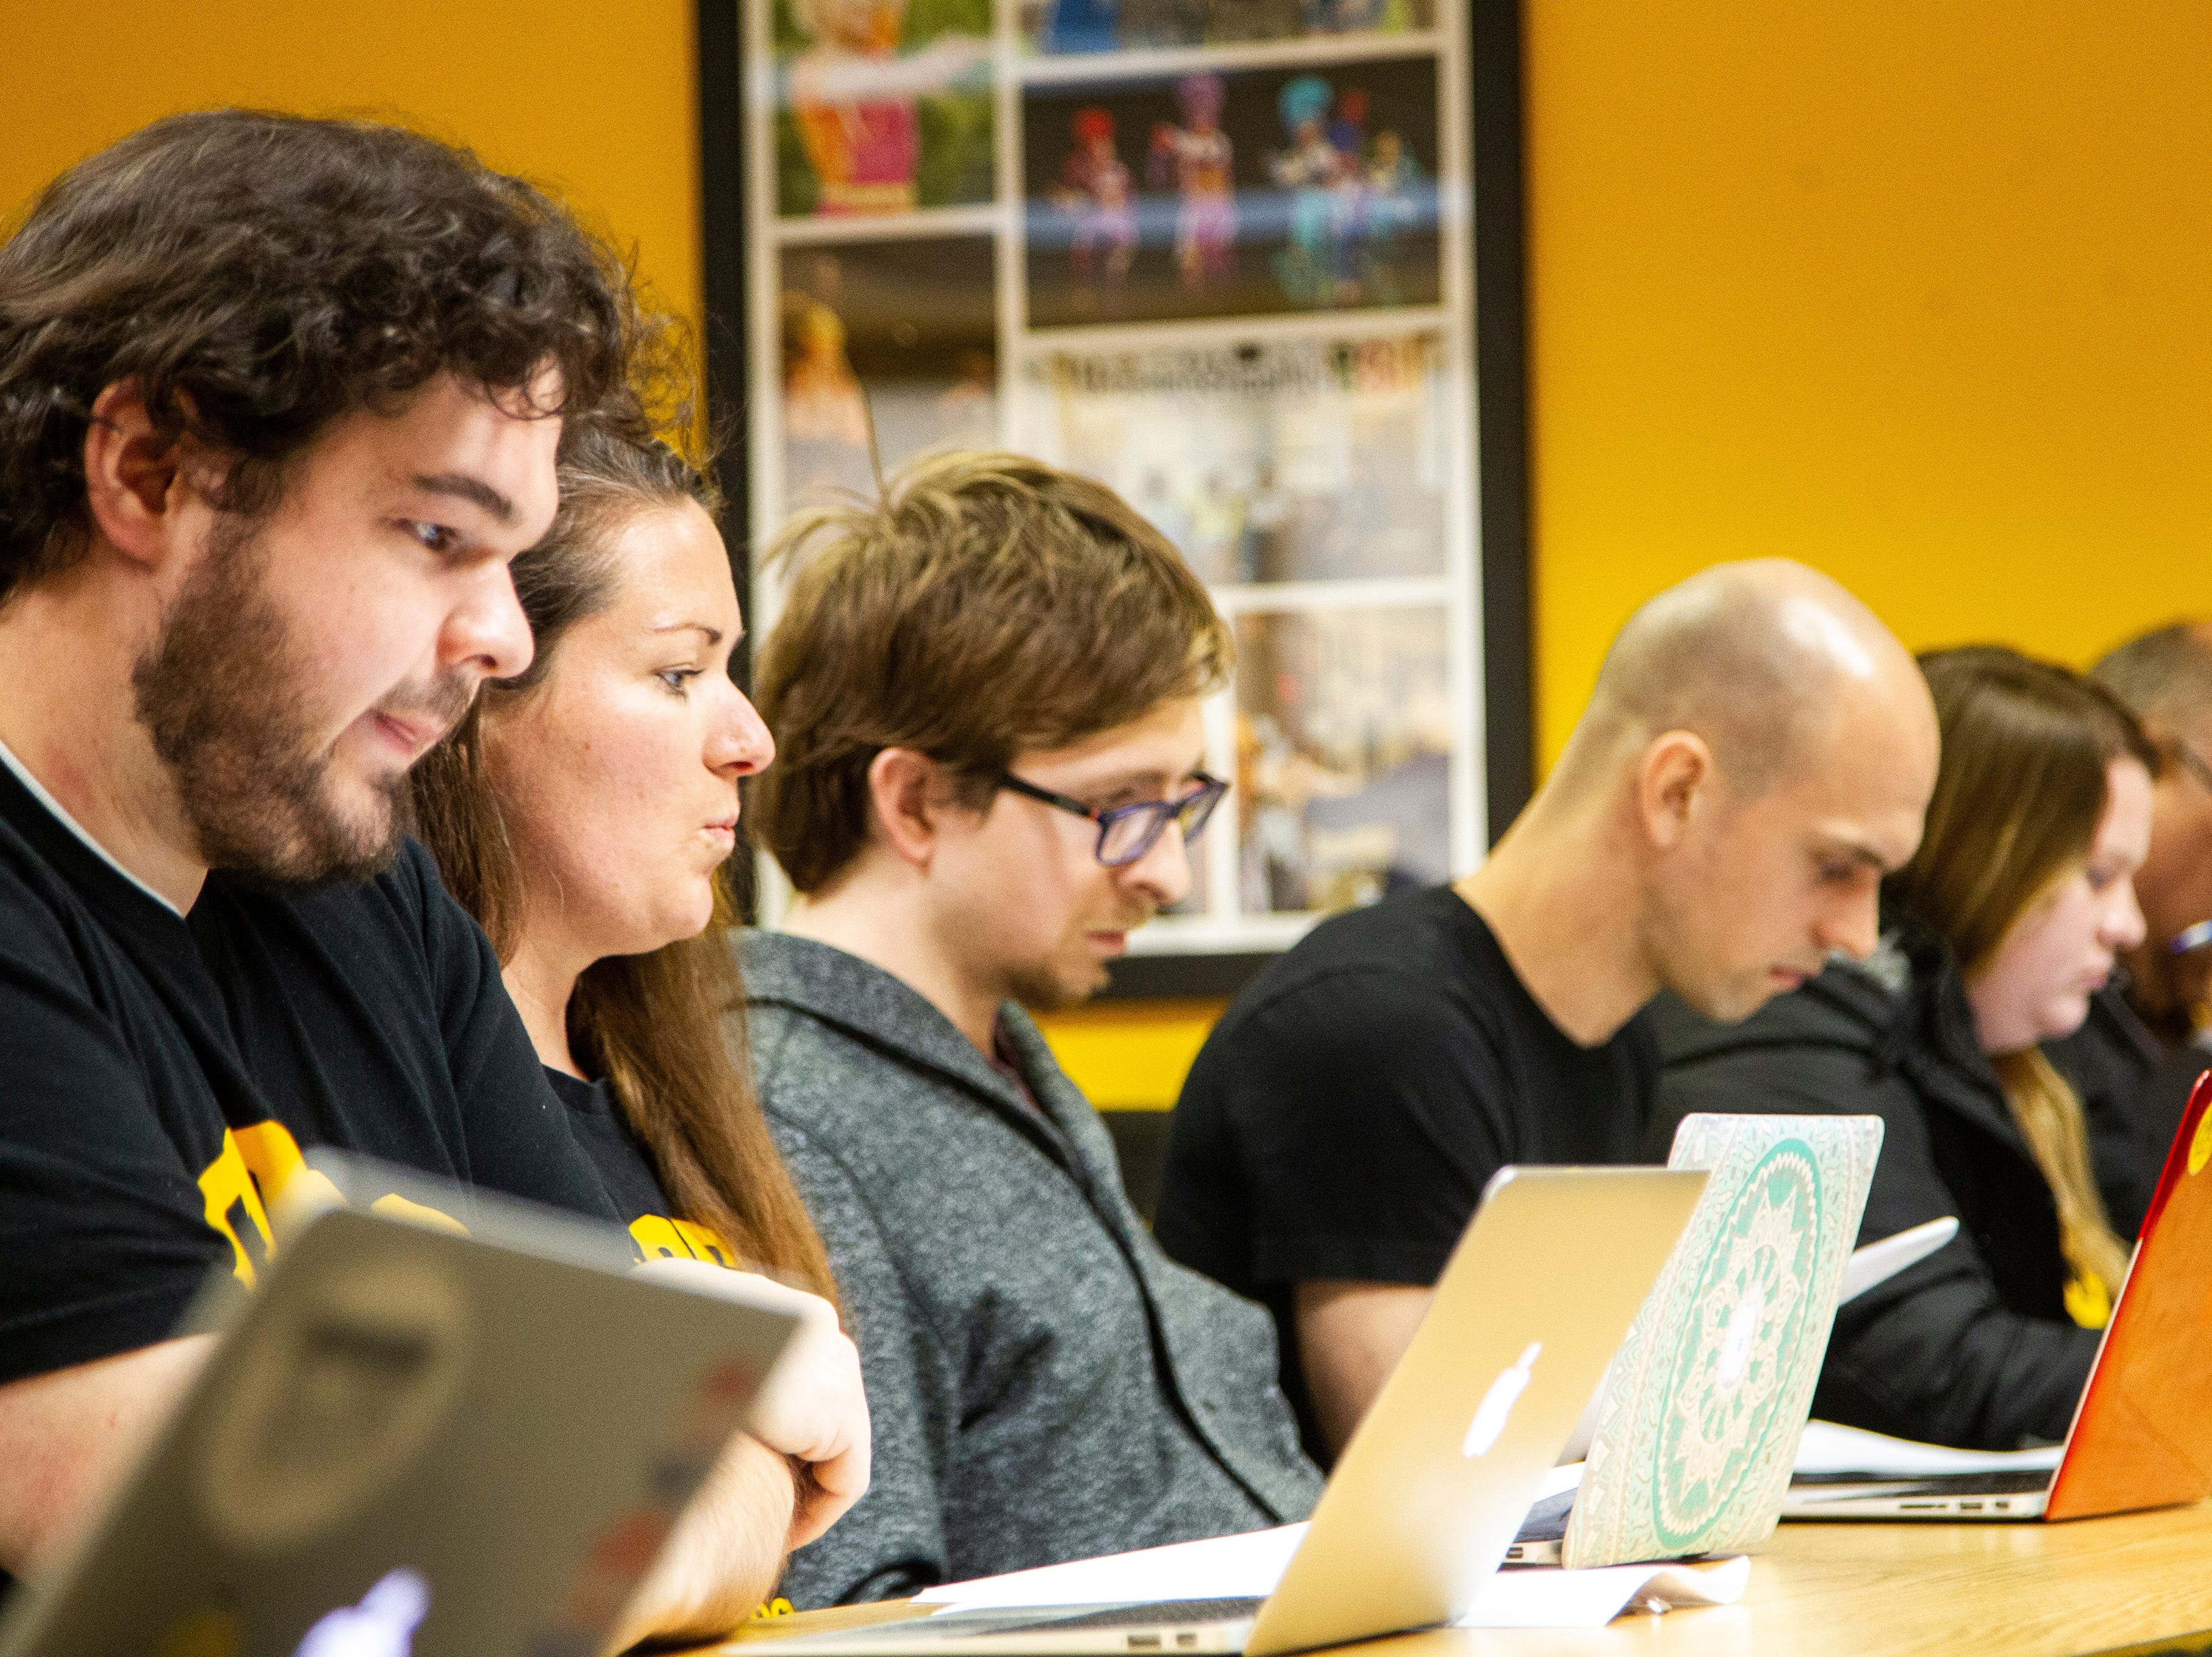 Campaign to Organize Graduate Students President Laura Szech (second from left) speaks during a contract proposal from the Iowa Board of Regents on Wednesday, Dec. 12, 2018, at the Iowa Memorial Union in Iowa City.